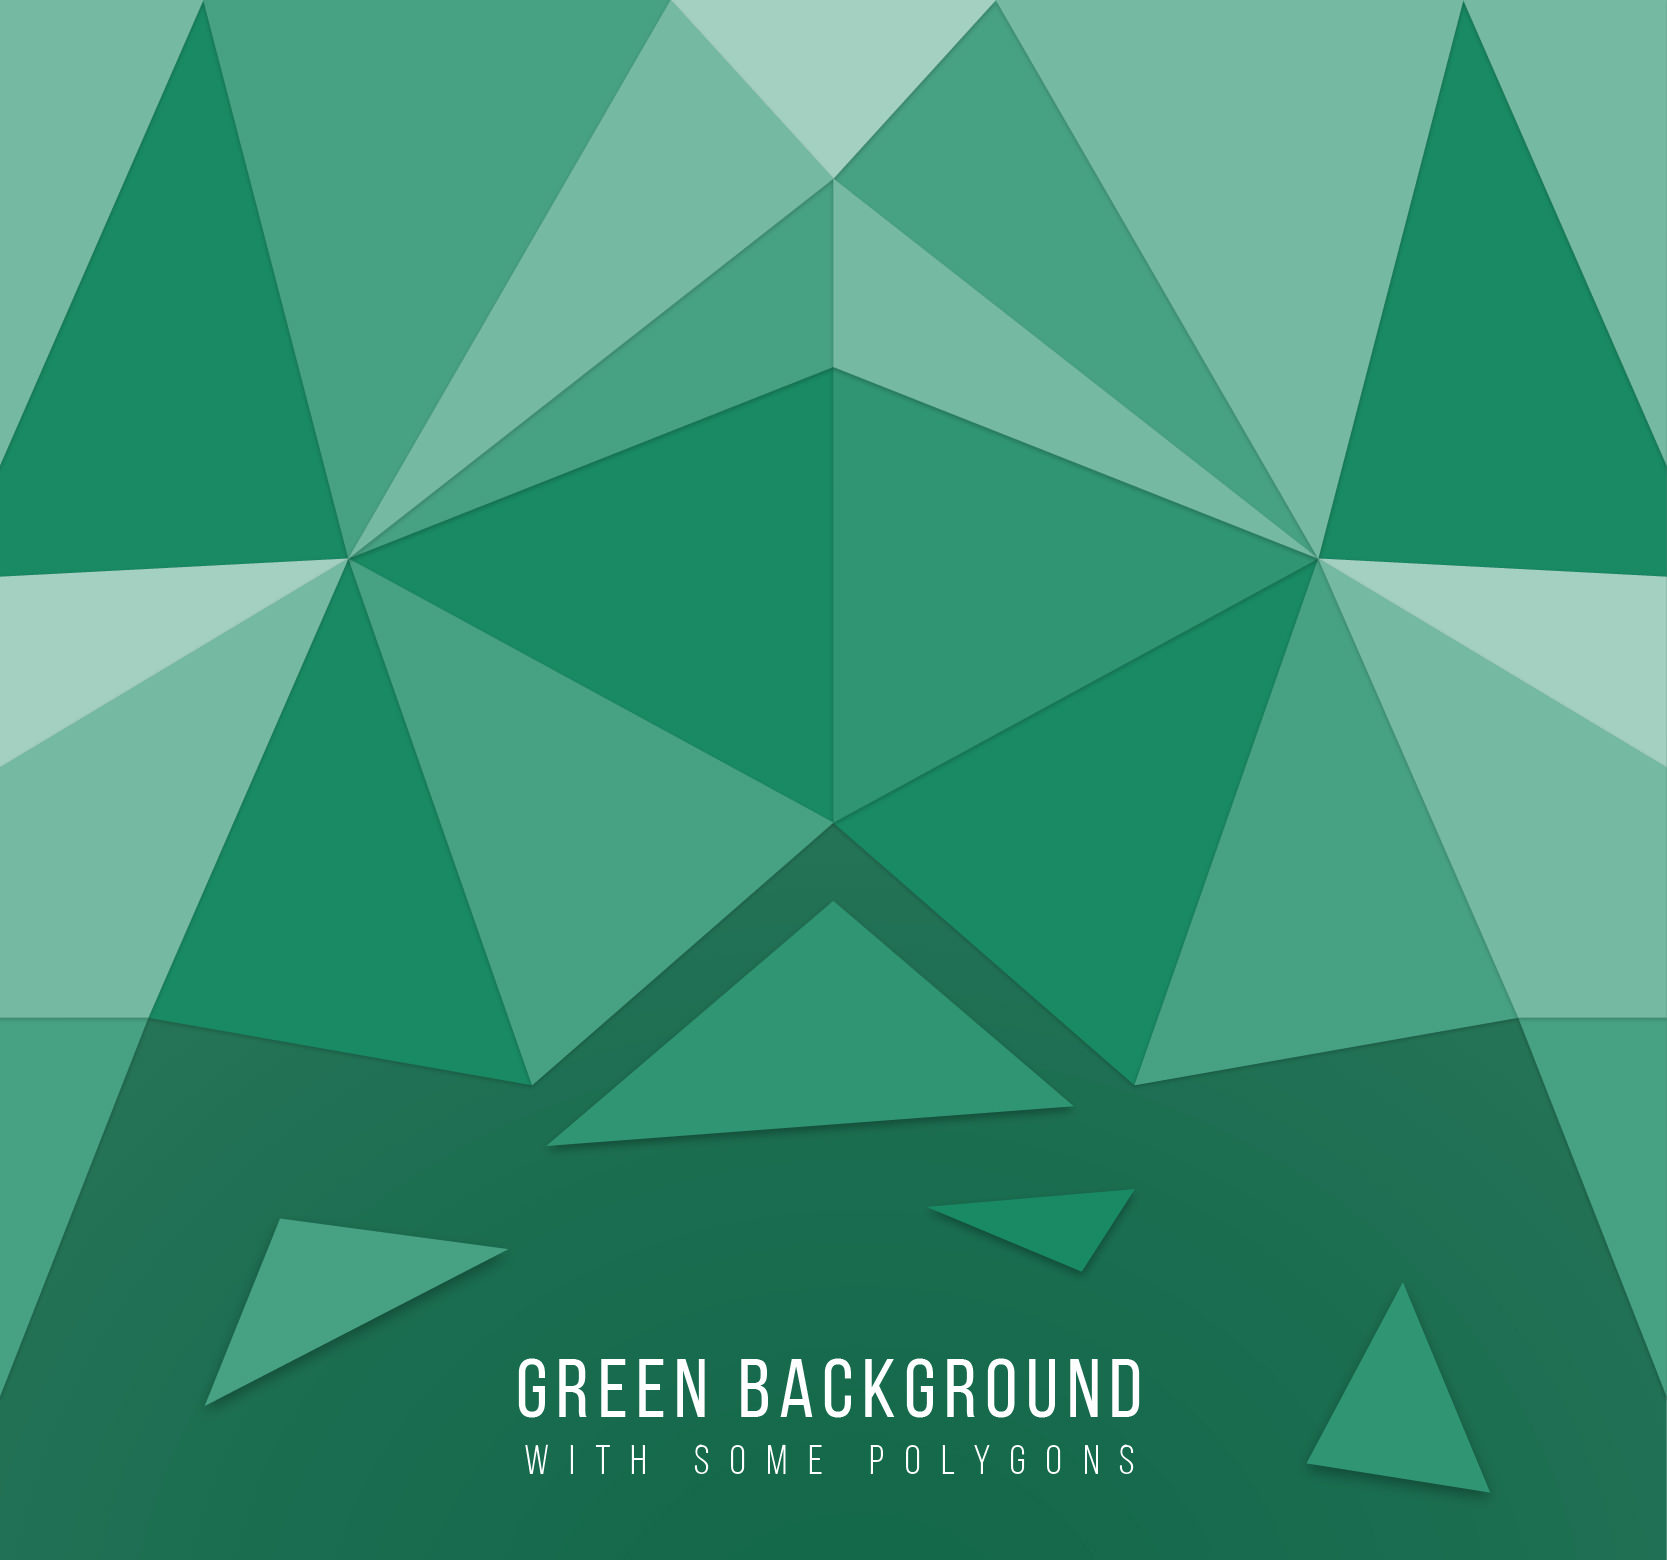 Green Background made of Polygons